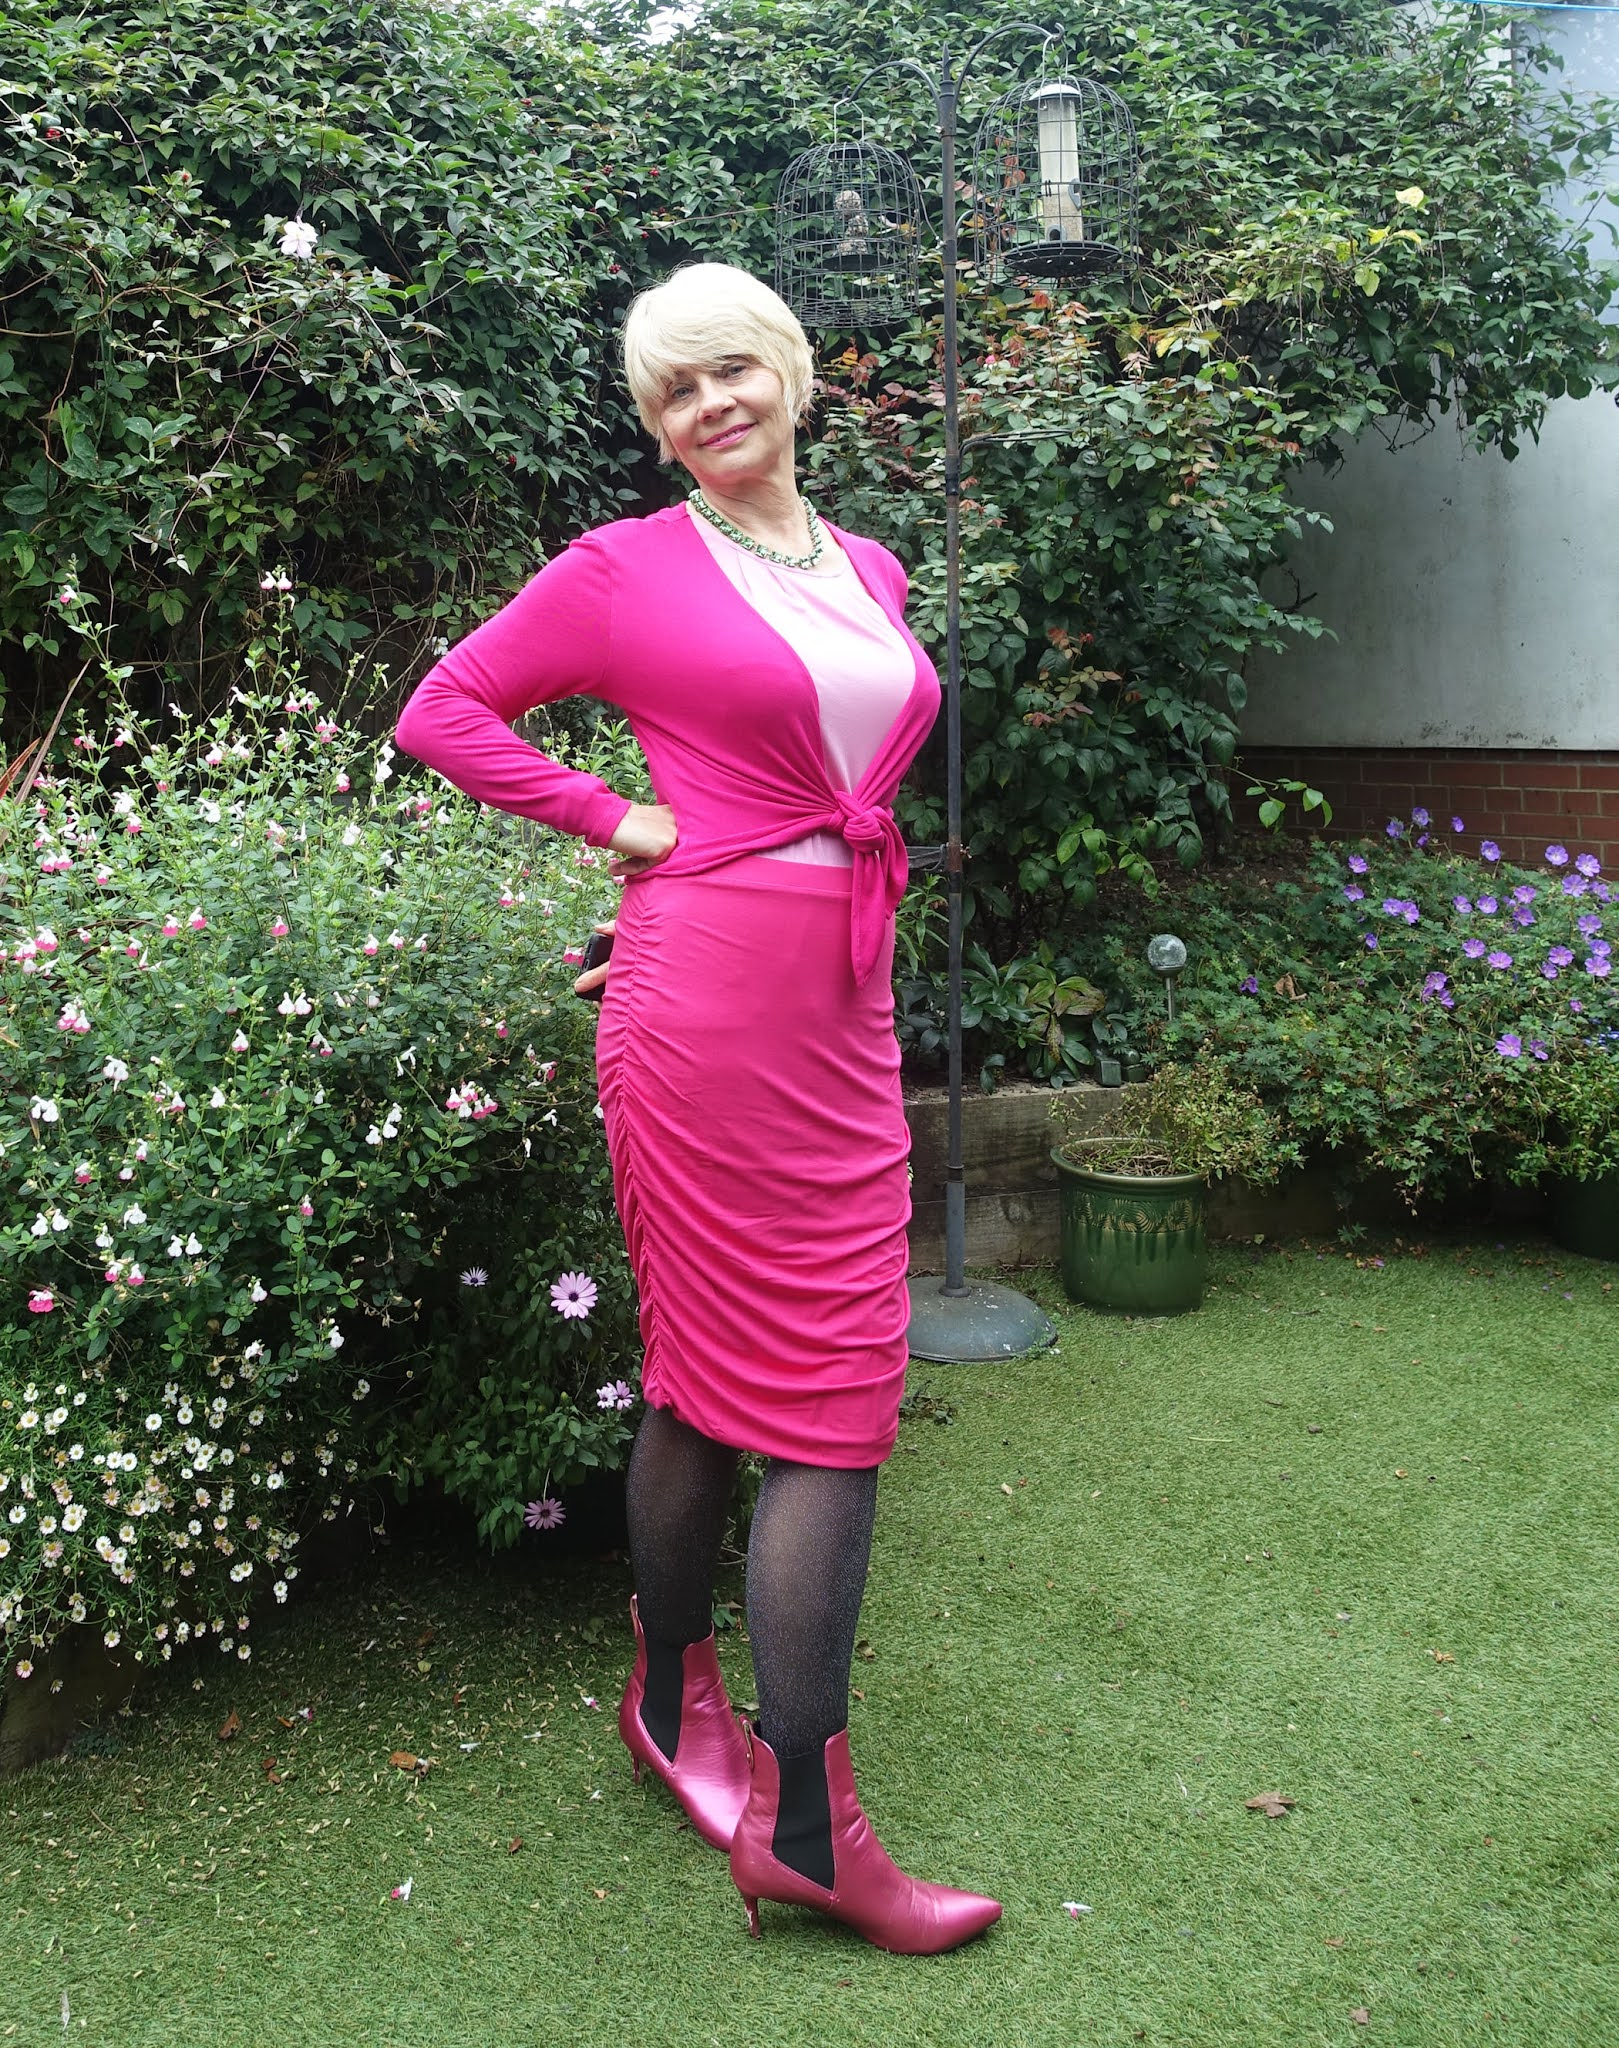 Gail Hanlon from over 50s style blog Is This Mutton in an all-pink outfit